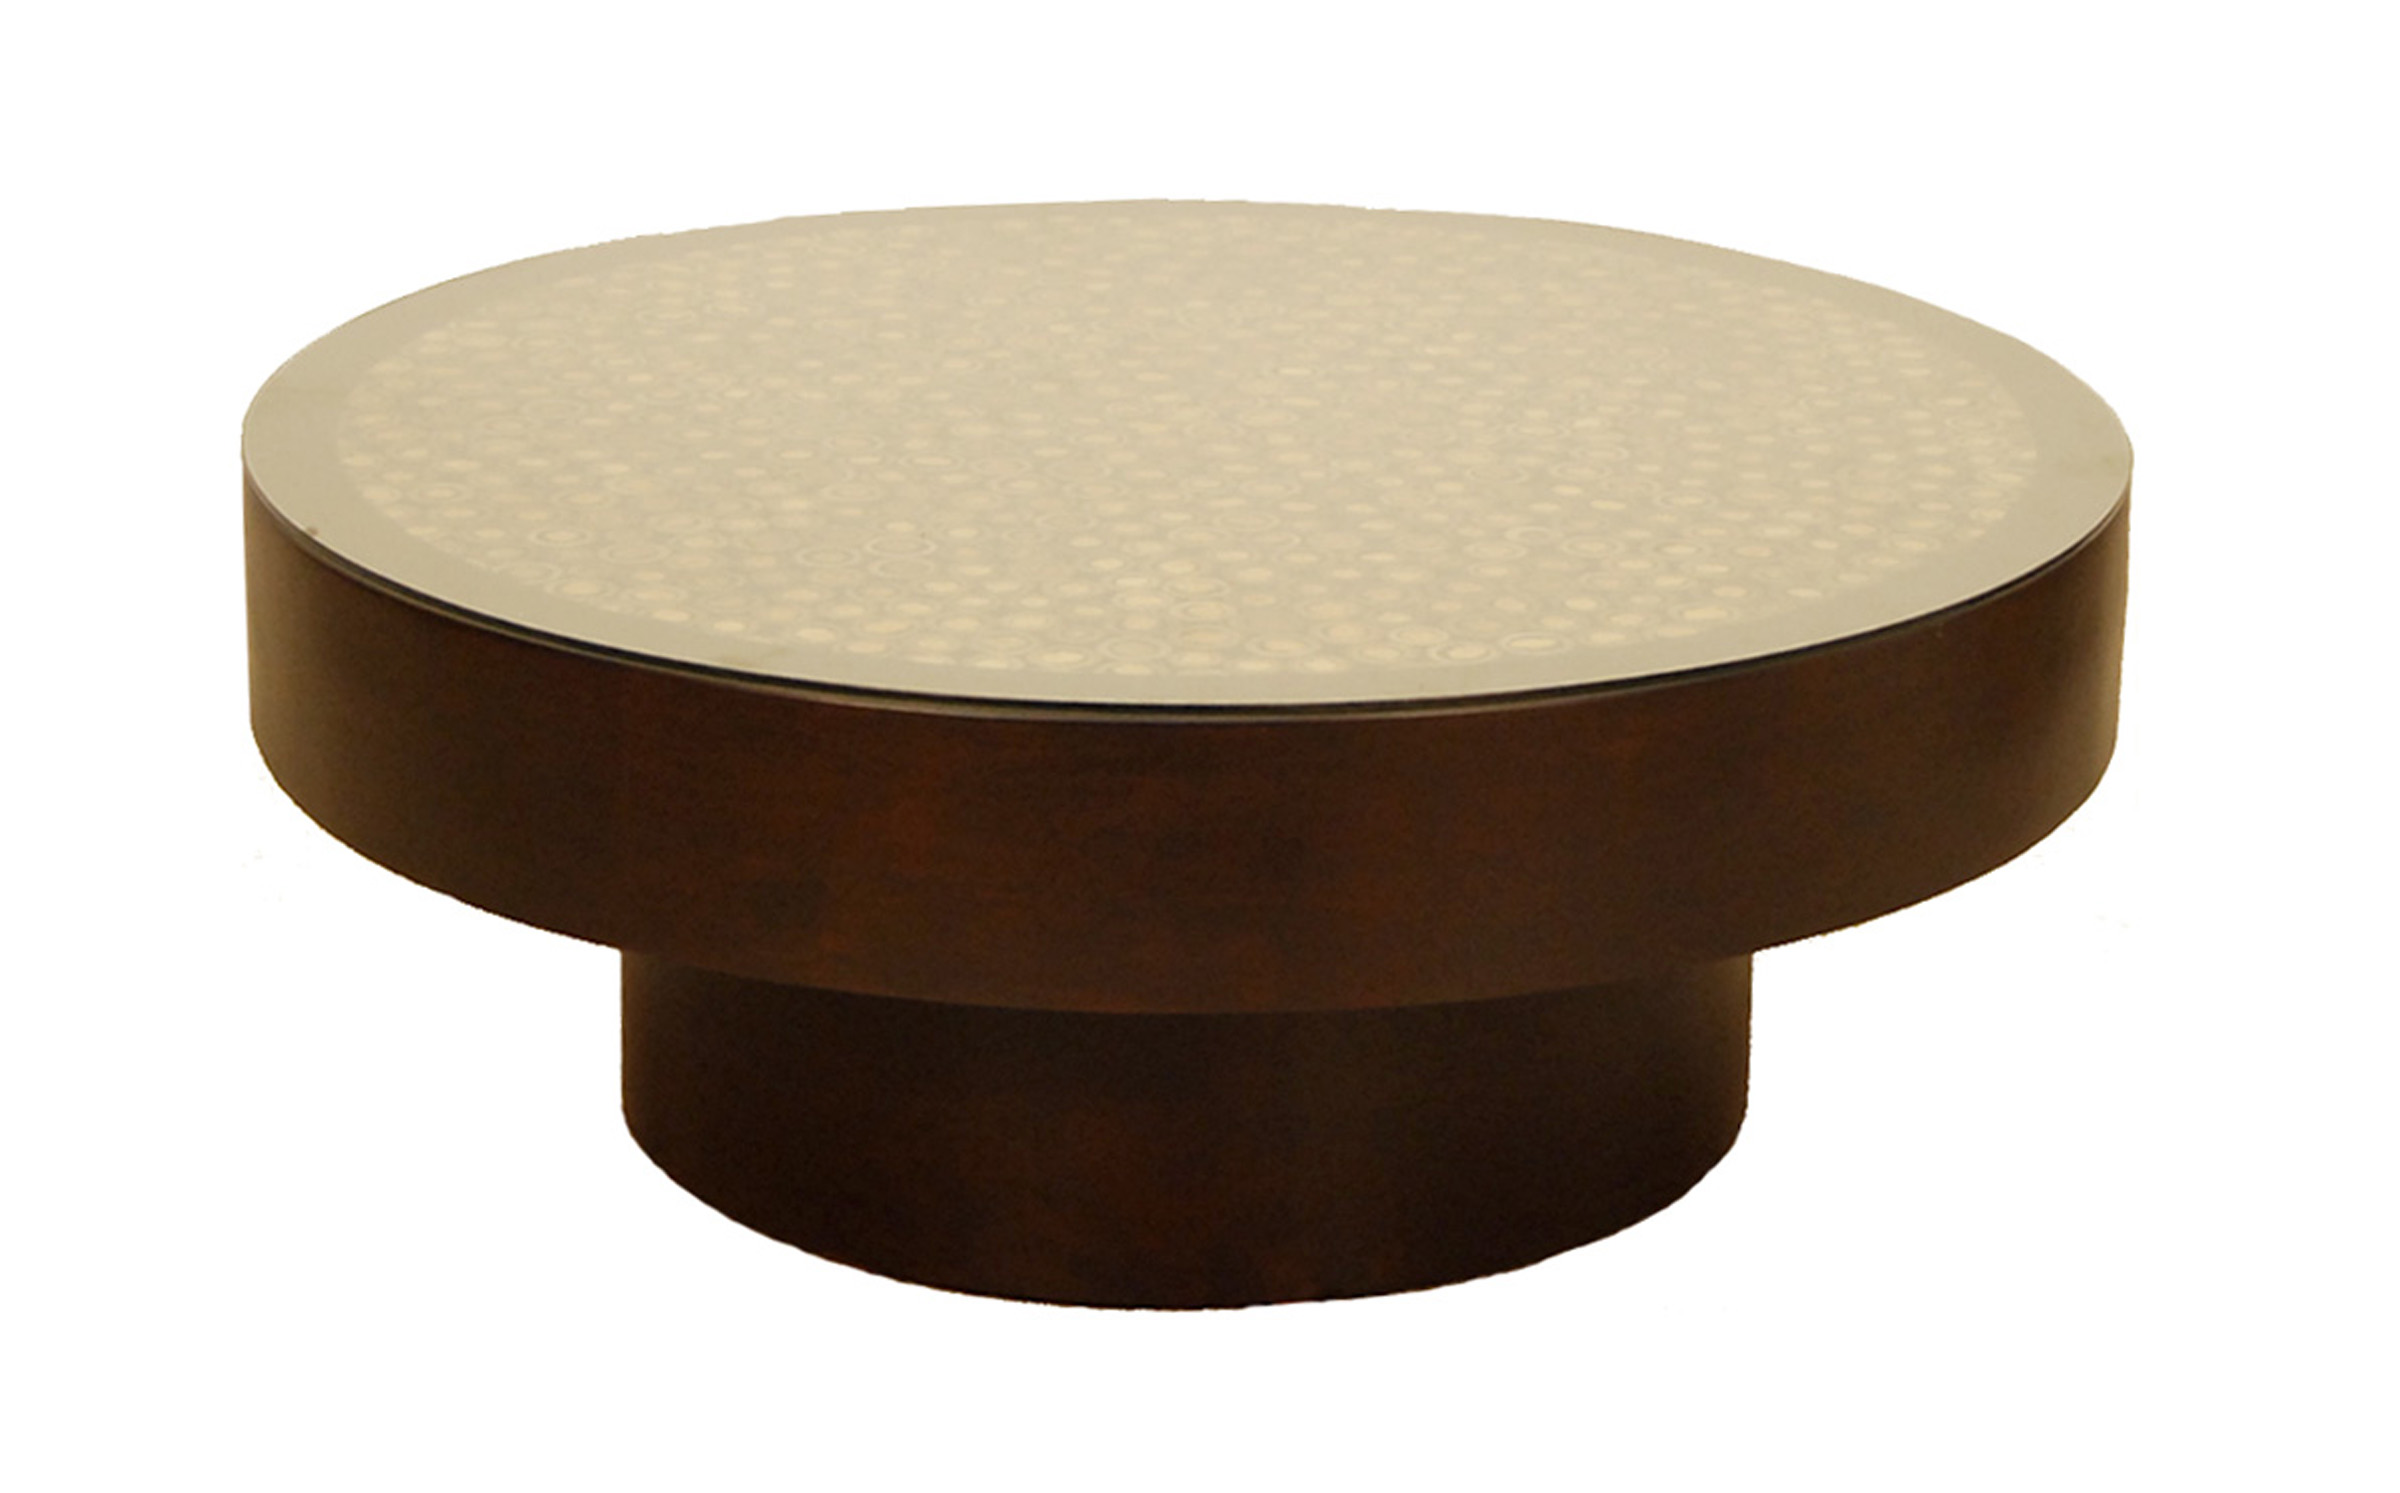 [help] pietement pour table basse ronde FB-5730-1-WOOD-CCUT-BAMBOO-WITH-SUNFLOWER-TOP-COFFEE-TBL